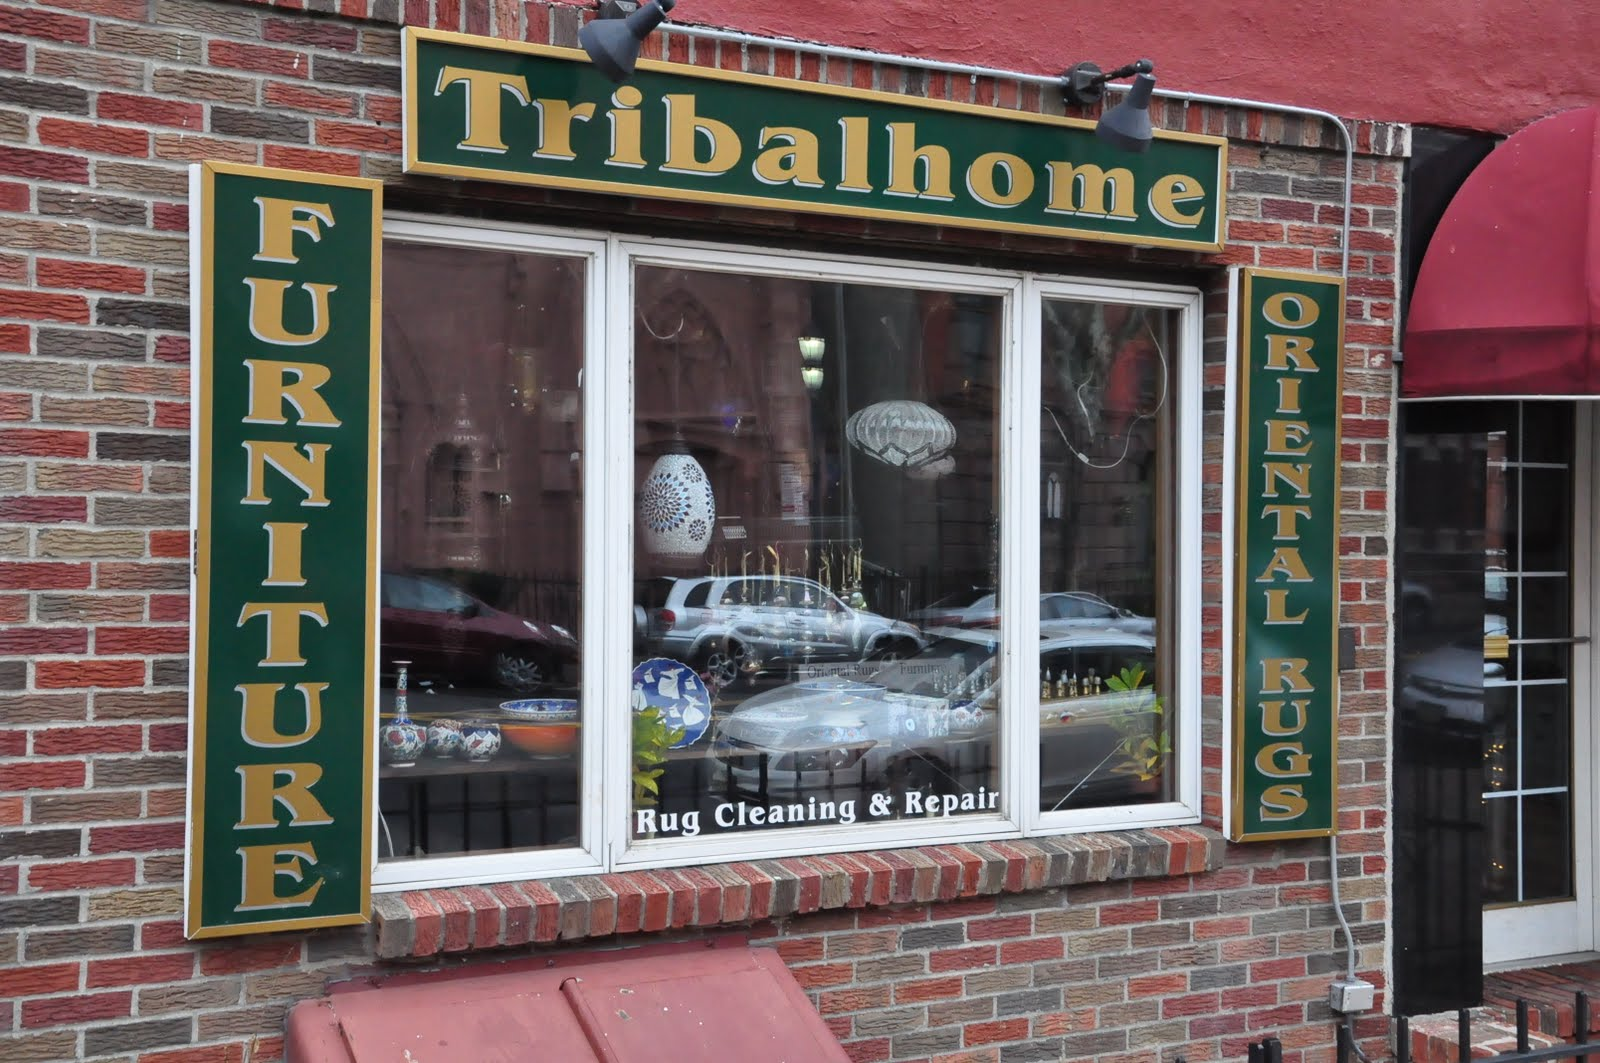 Amazing Tribal Home U2013 Hoboken Furniture And Rug Store | The Hoboken Journal   Archive Site